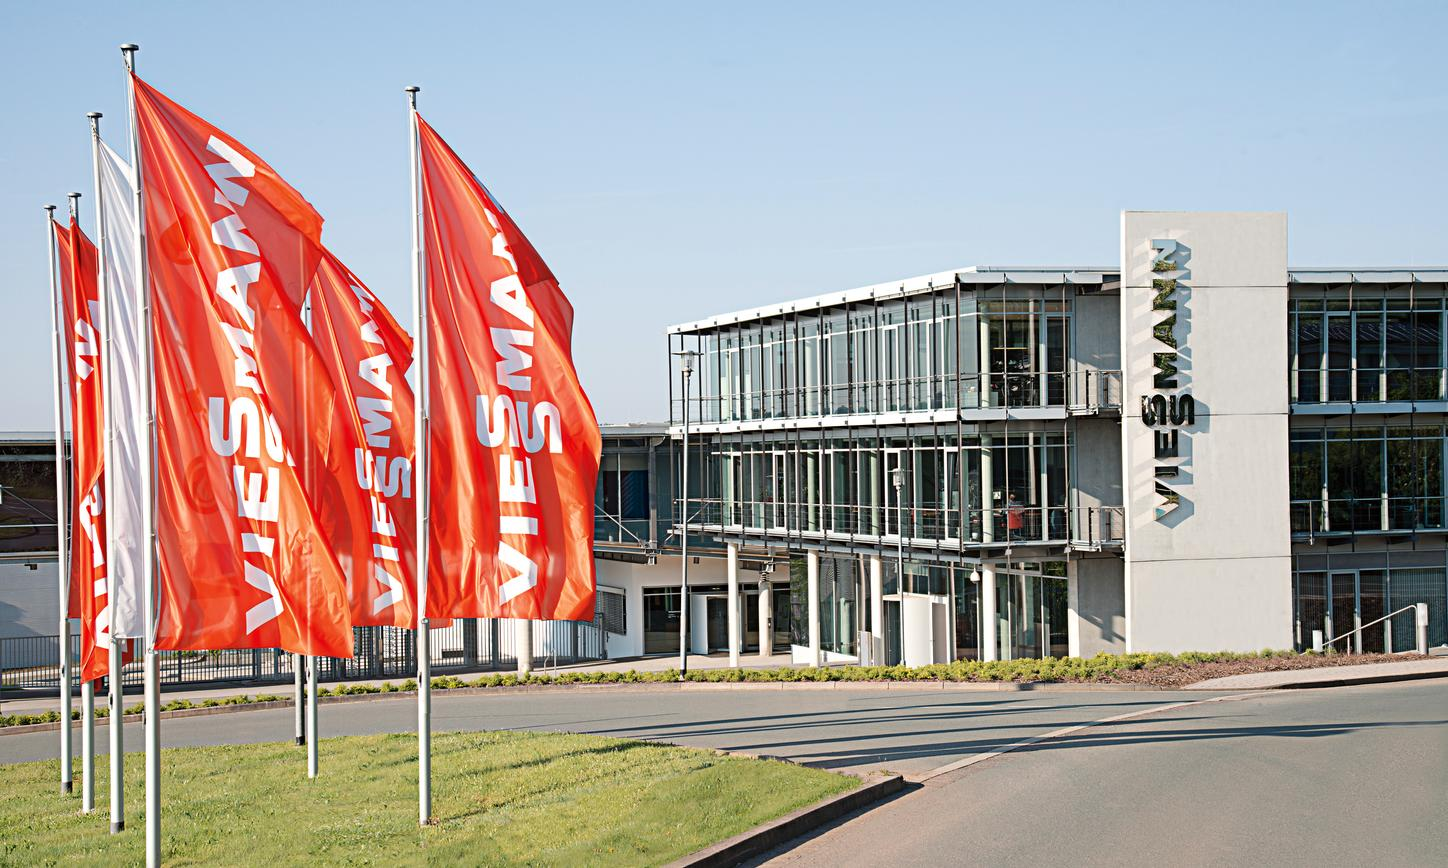 The image shows the Viessmann company headquarters in Allendorf (Eder).